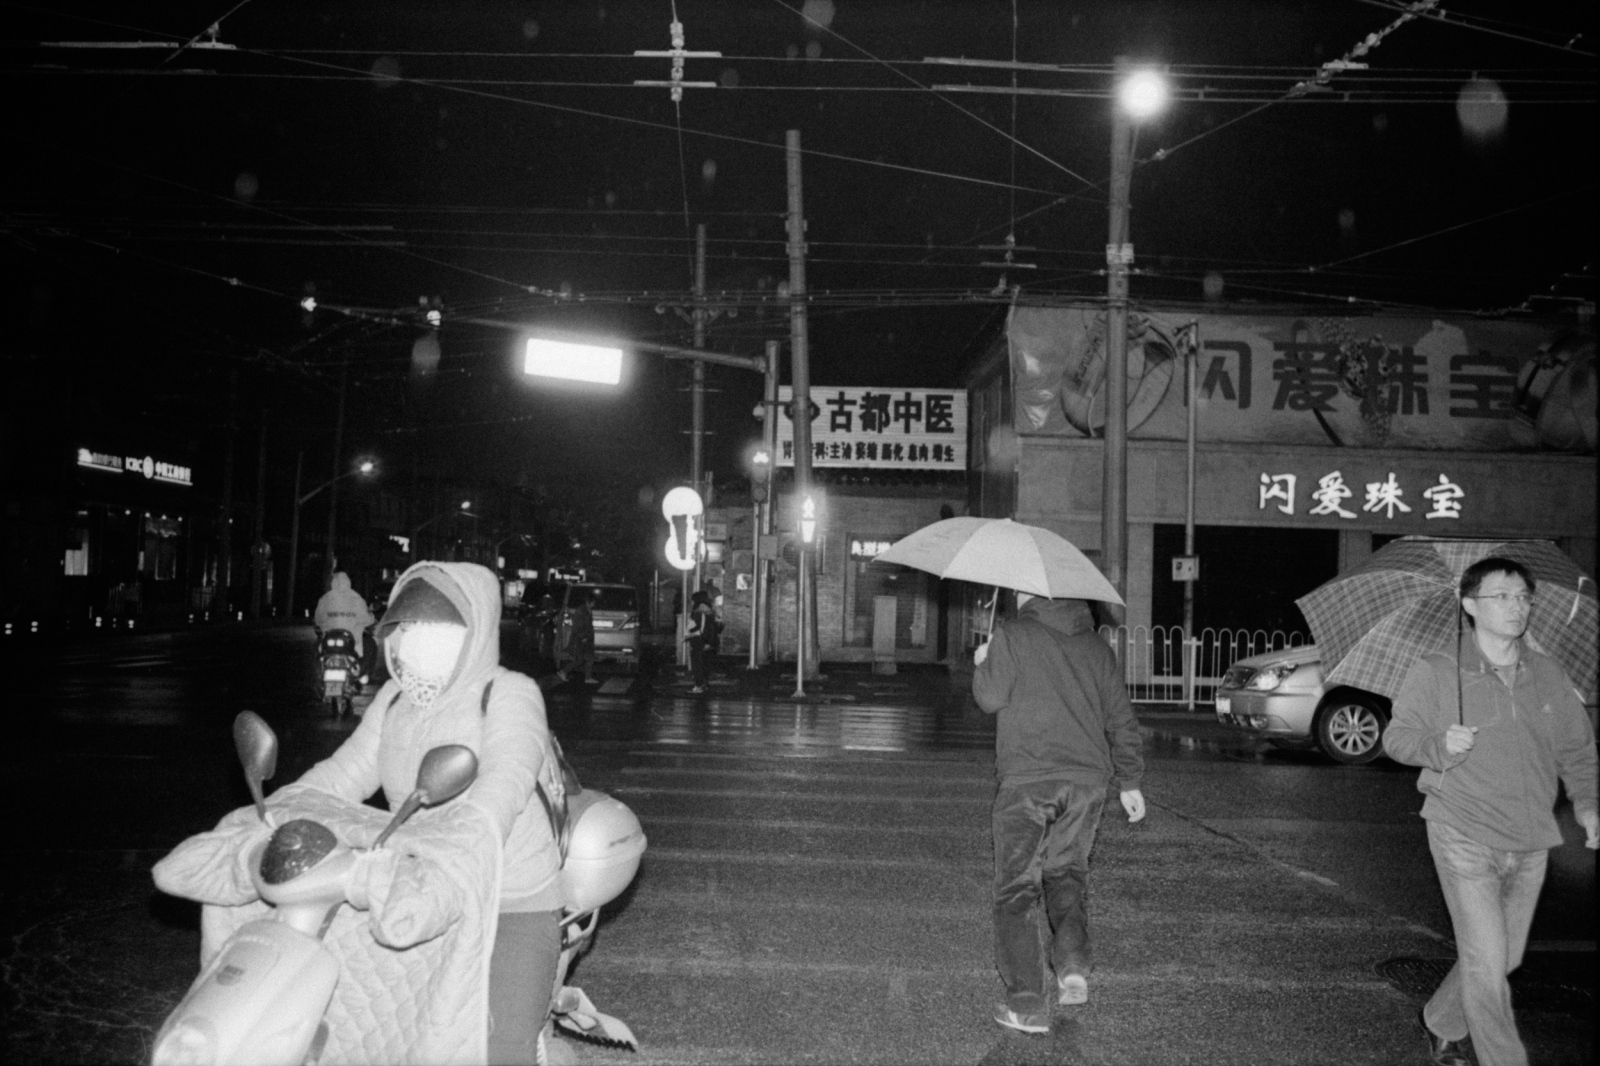 Street on a rainy night near Xisi station. Beijing, China. 2015